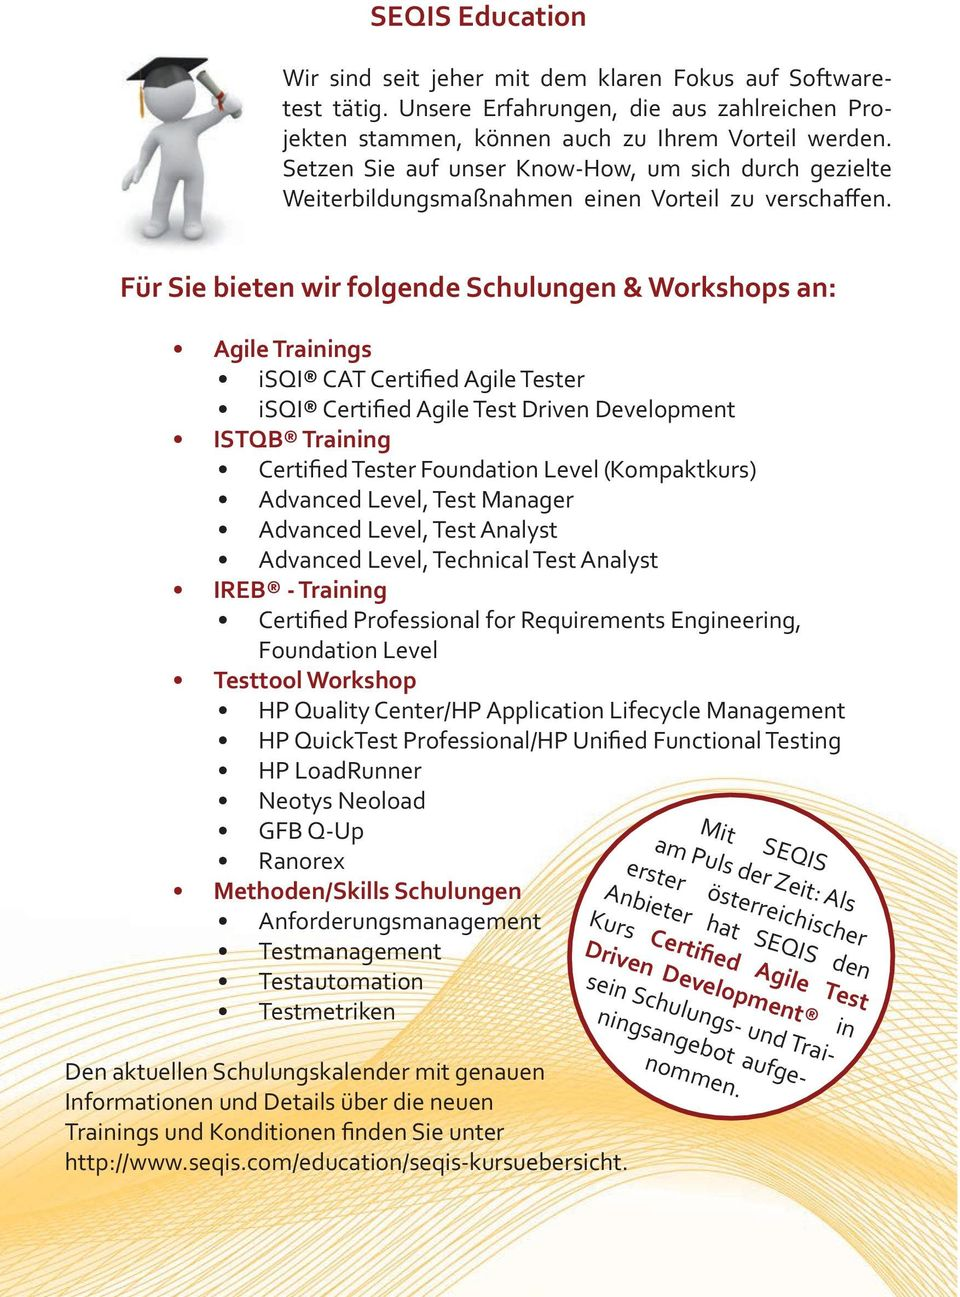 Für Sie bieten wir folgende Schulungen & Workshops an: Agile Trainings isqi CAT Certified Agile Tester isqi Certified Agile Test Driven Development ISTQB Training Certified Tester Foundation Level